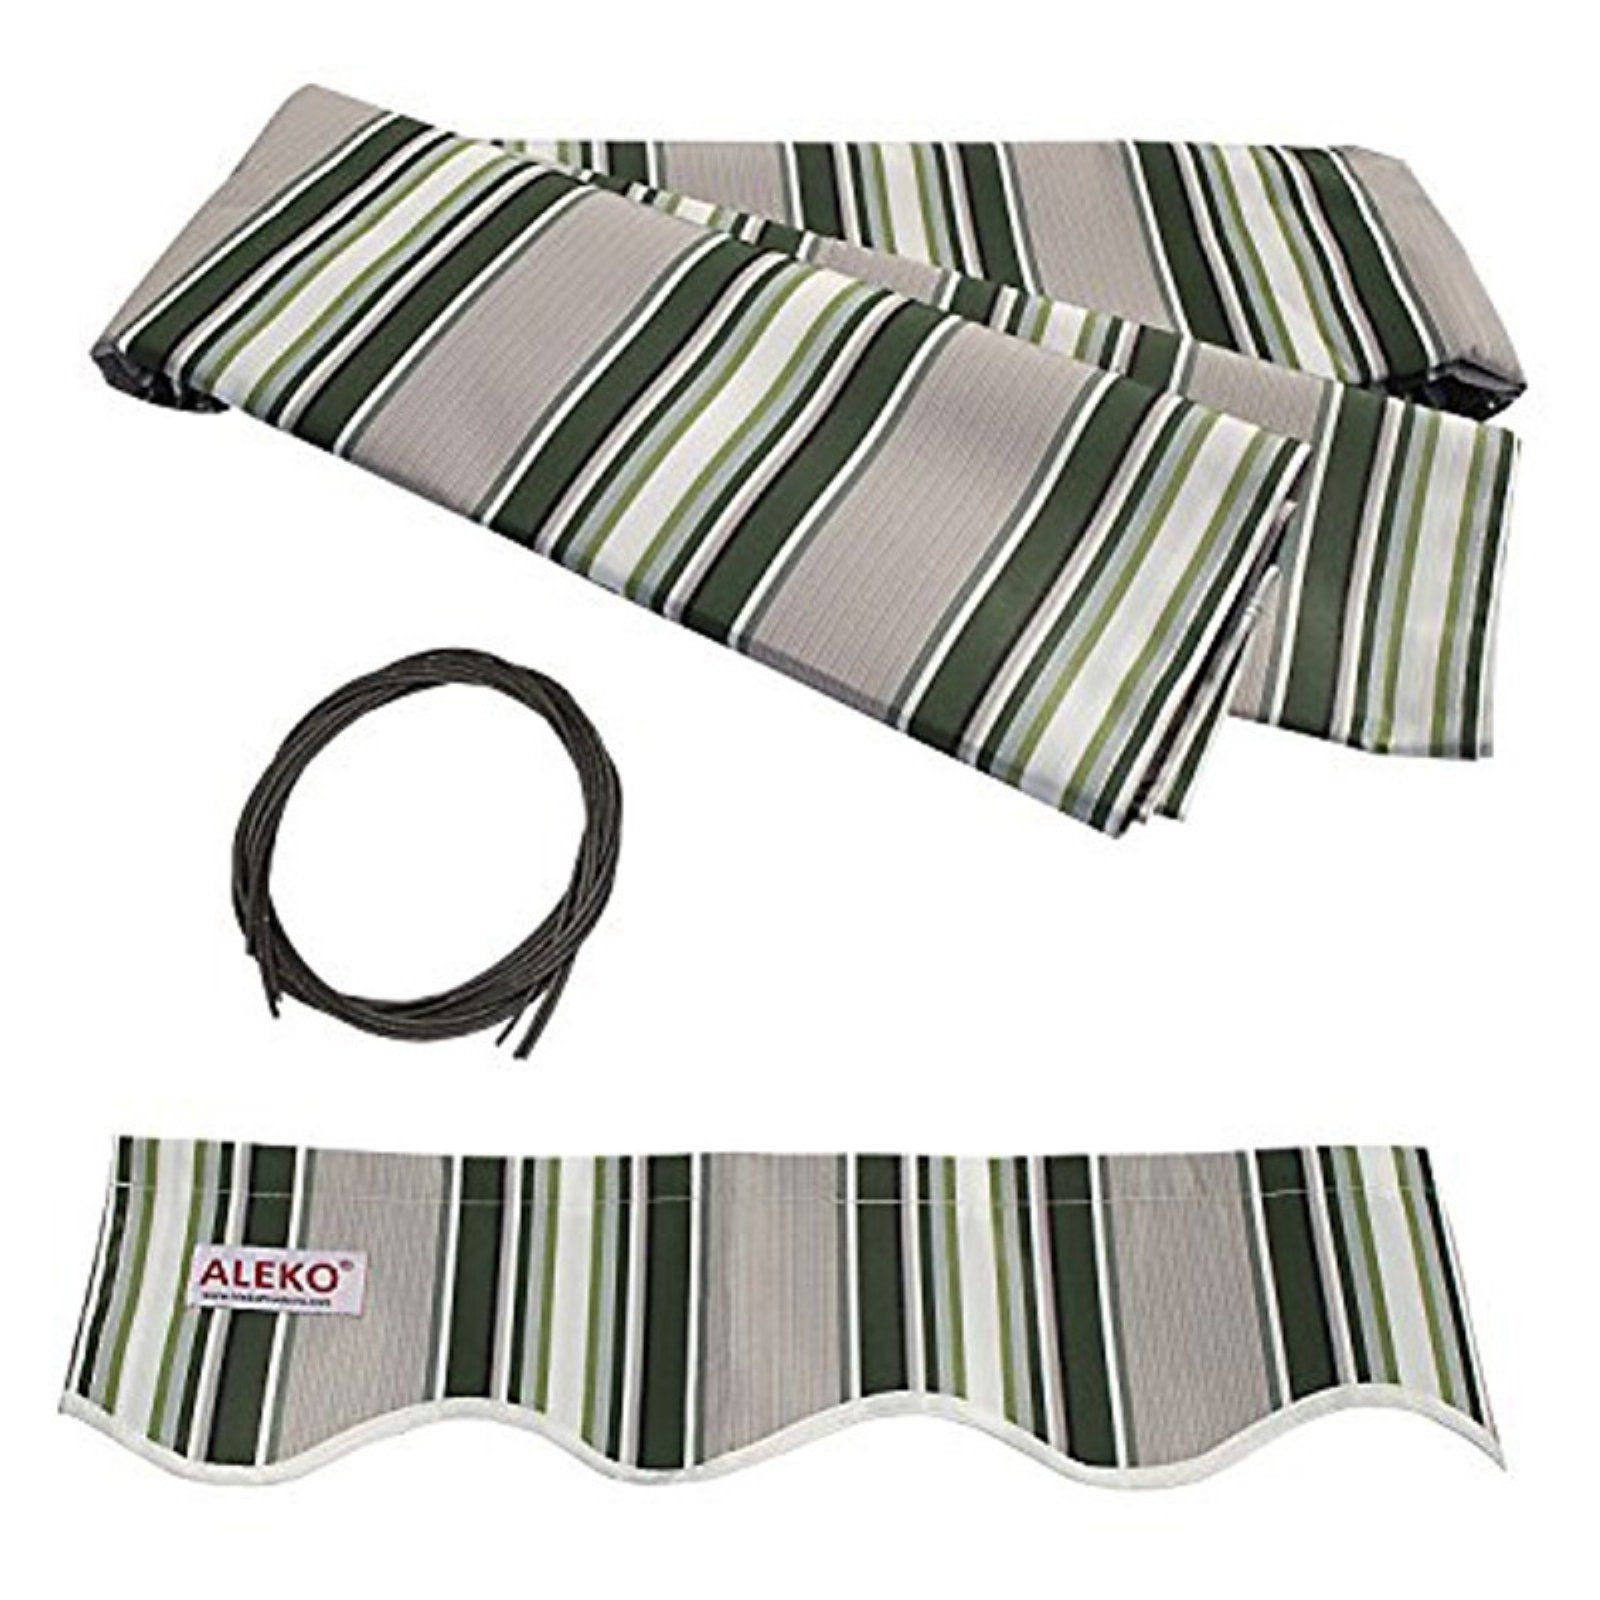 Aleko 13 X 10 Ft Retractable Awning Fabric Replacement Retractable Awning Patio Awning Fabric Awning